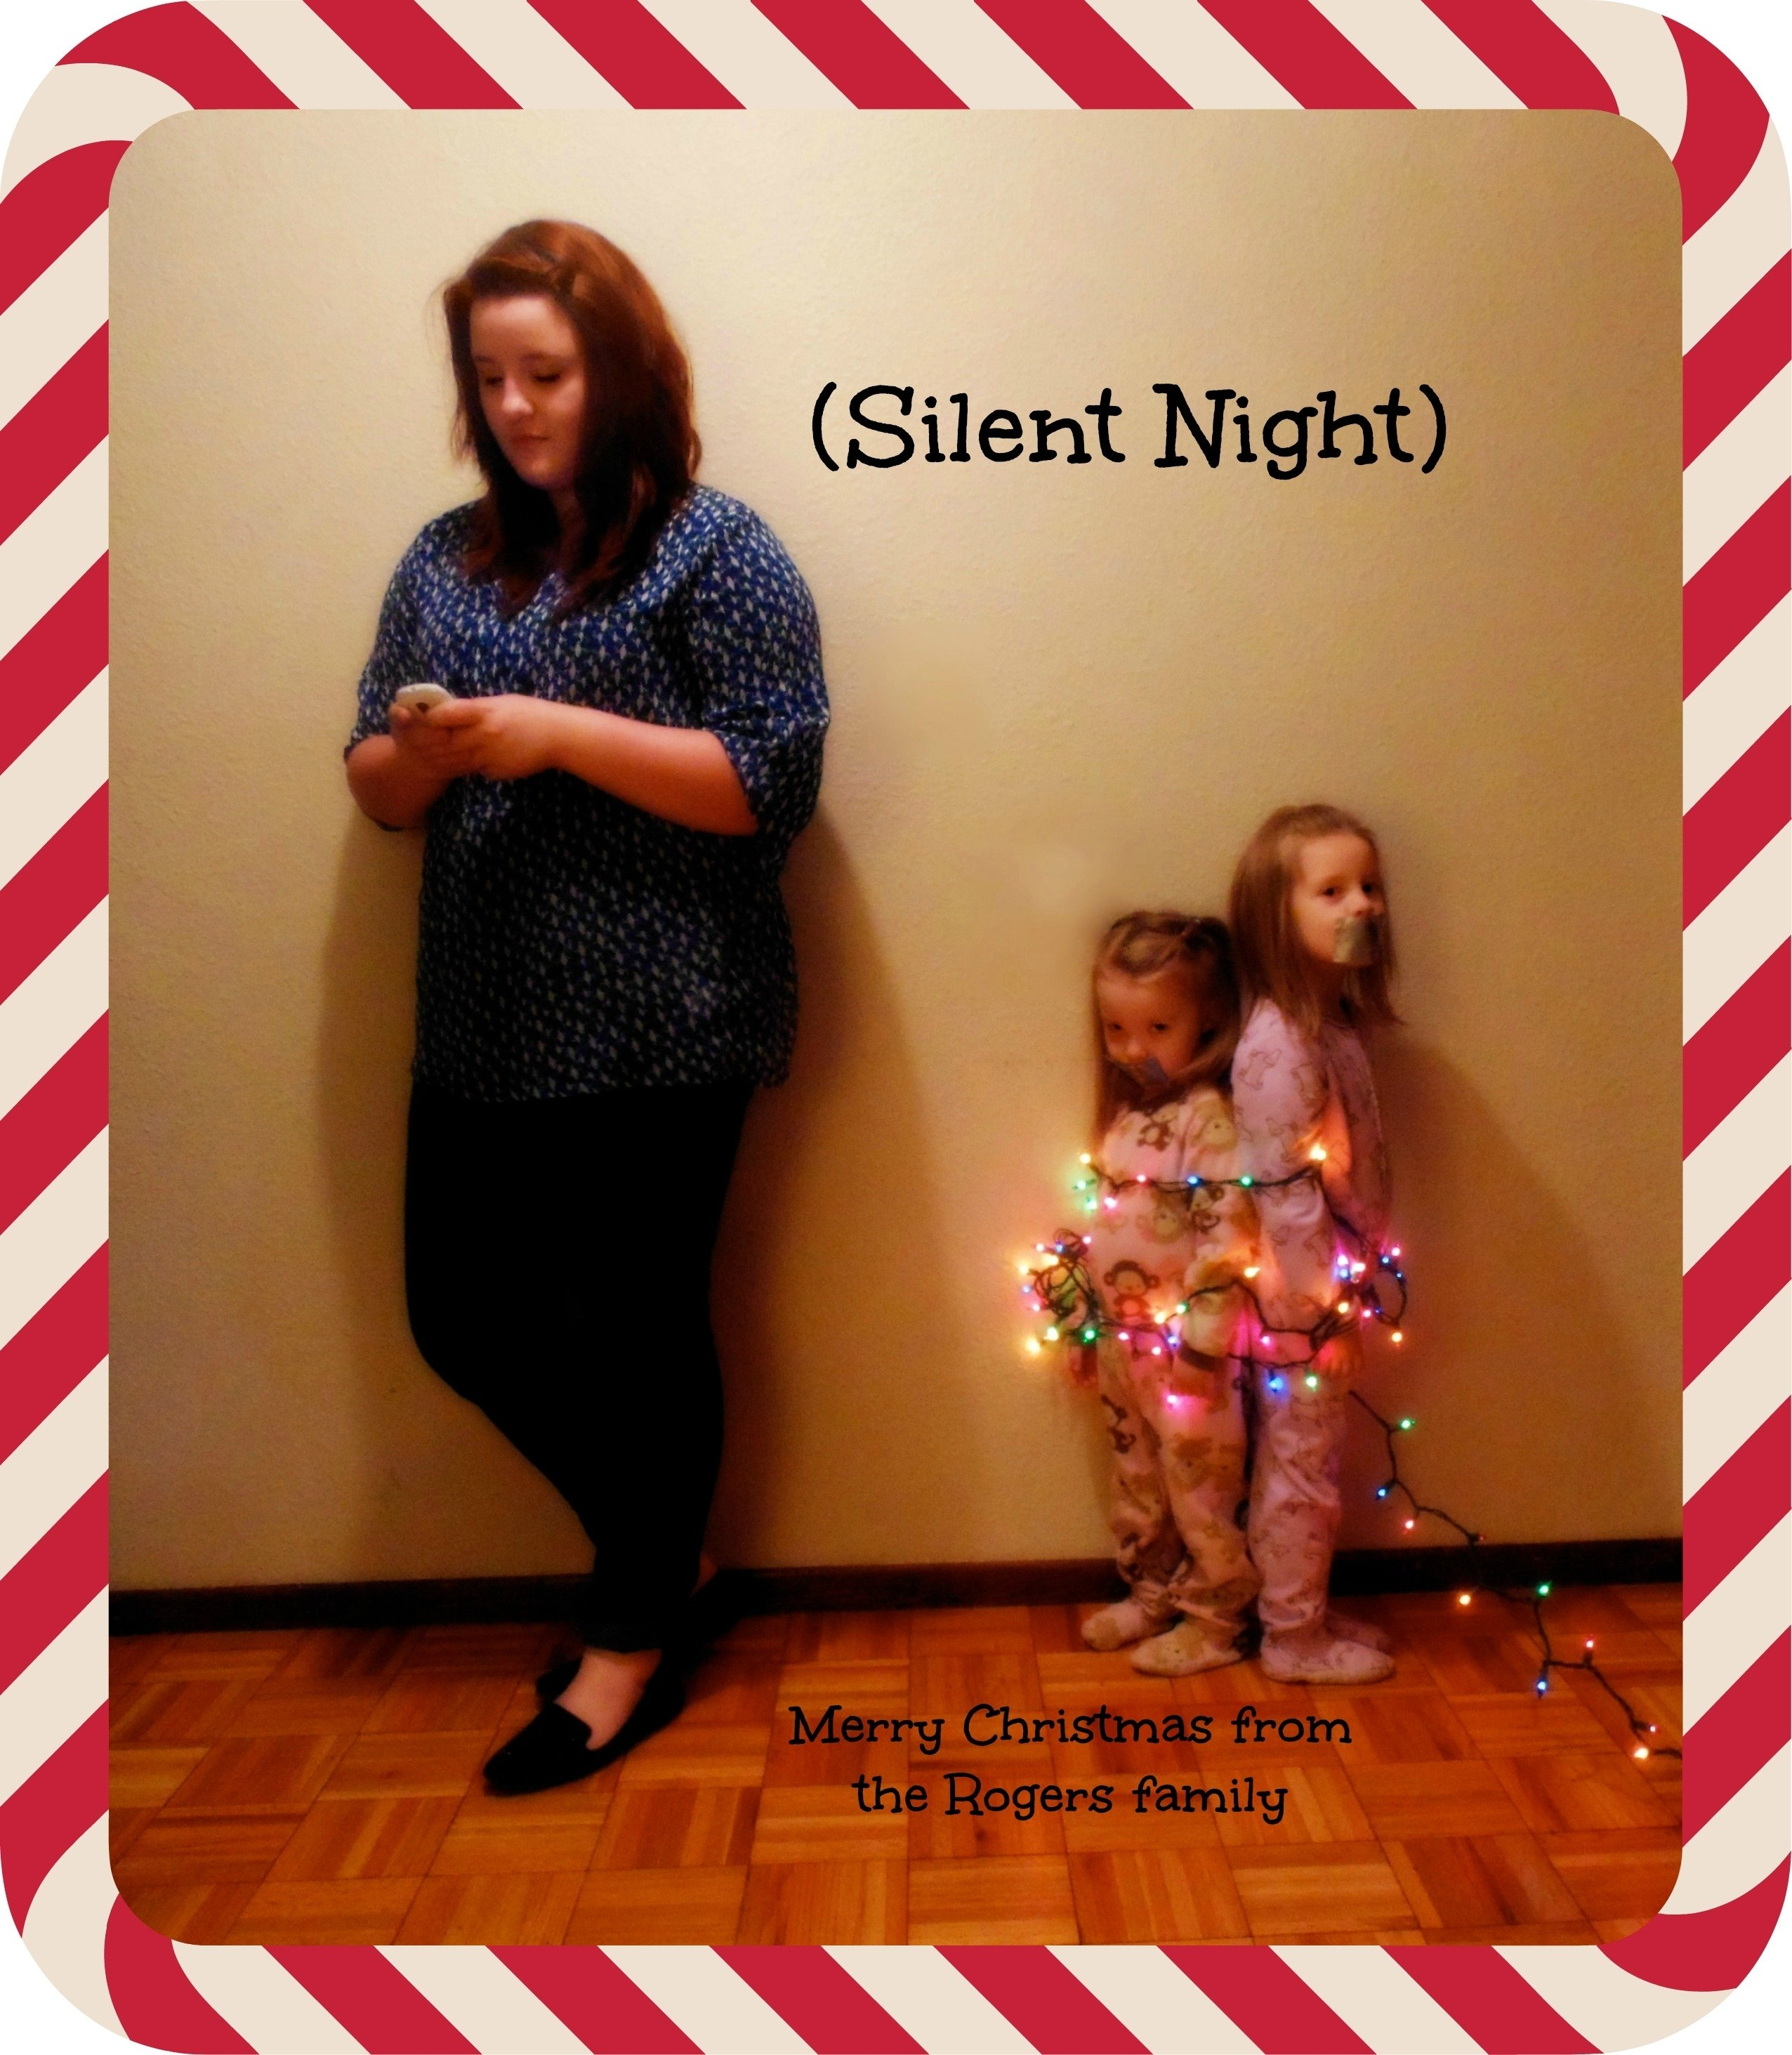 10 Fantastic Kids Christmas Card Photo Ideas silent night christmas card texting teen younger siblings wrapped 2020